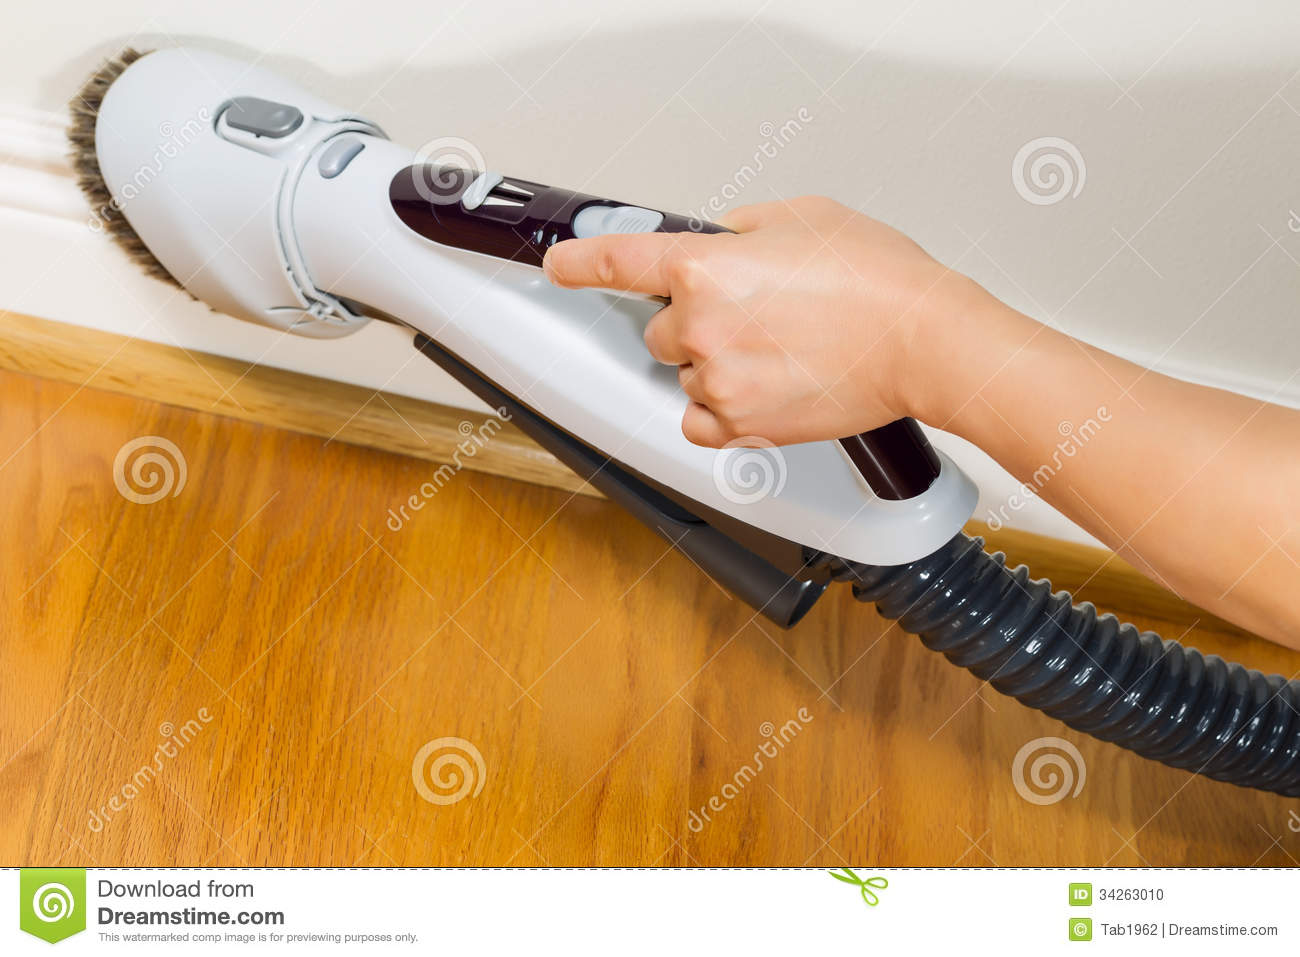 Cleaning Trim Next To Wooden Floors Stock Photo - Cleaning Trim Next To Wooden Floors Stock Photo - Image: 34263010